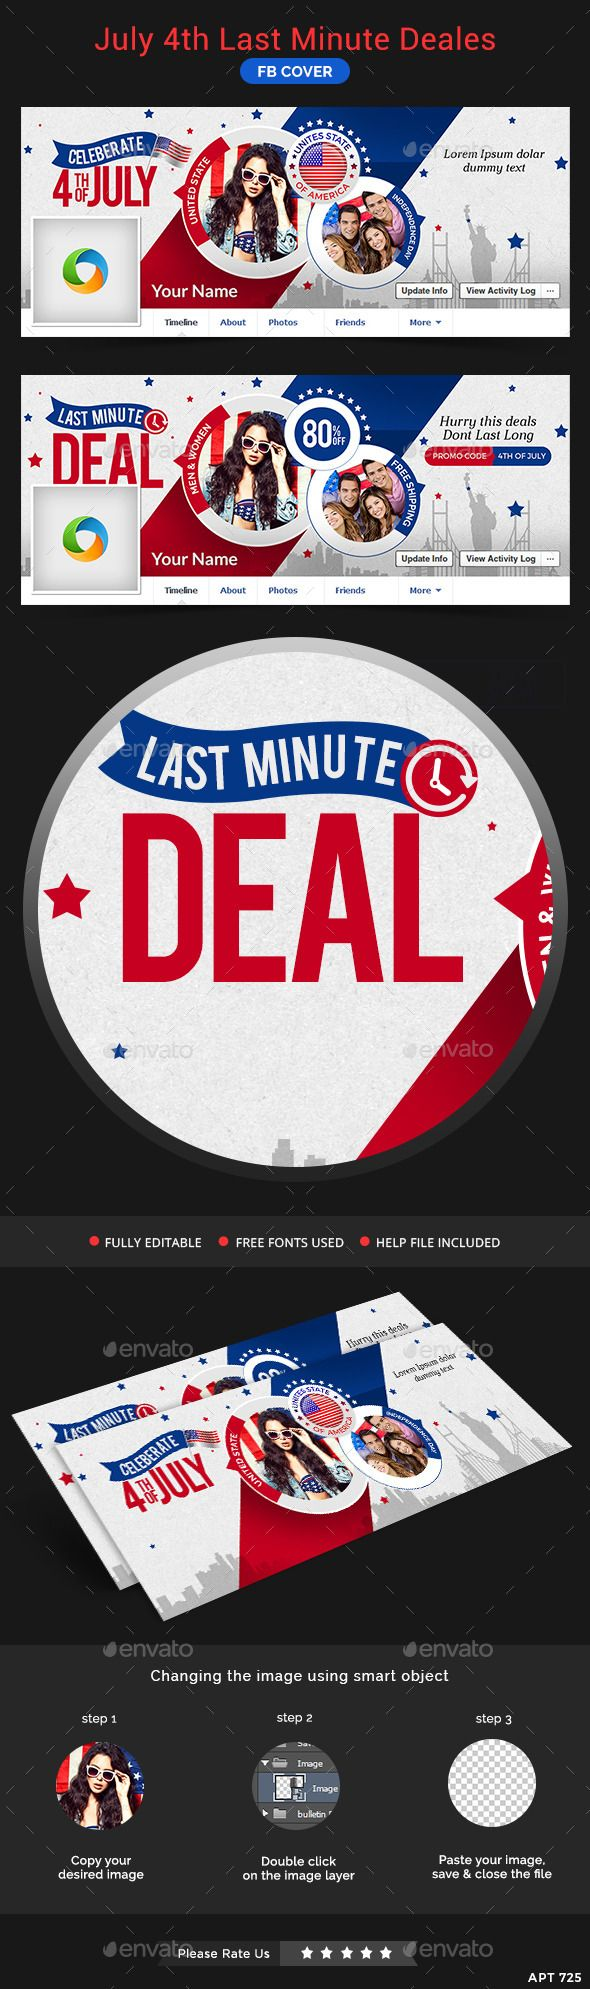 july 4th travel deals 2012